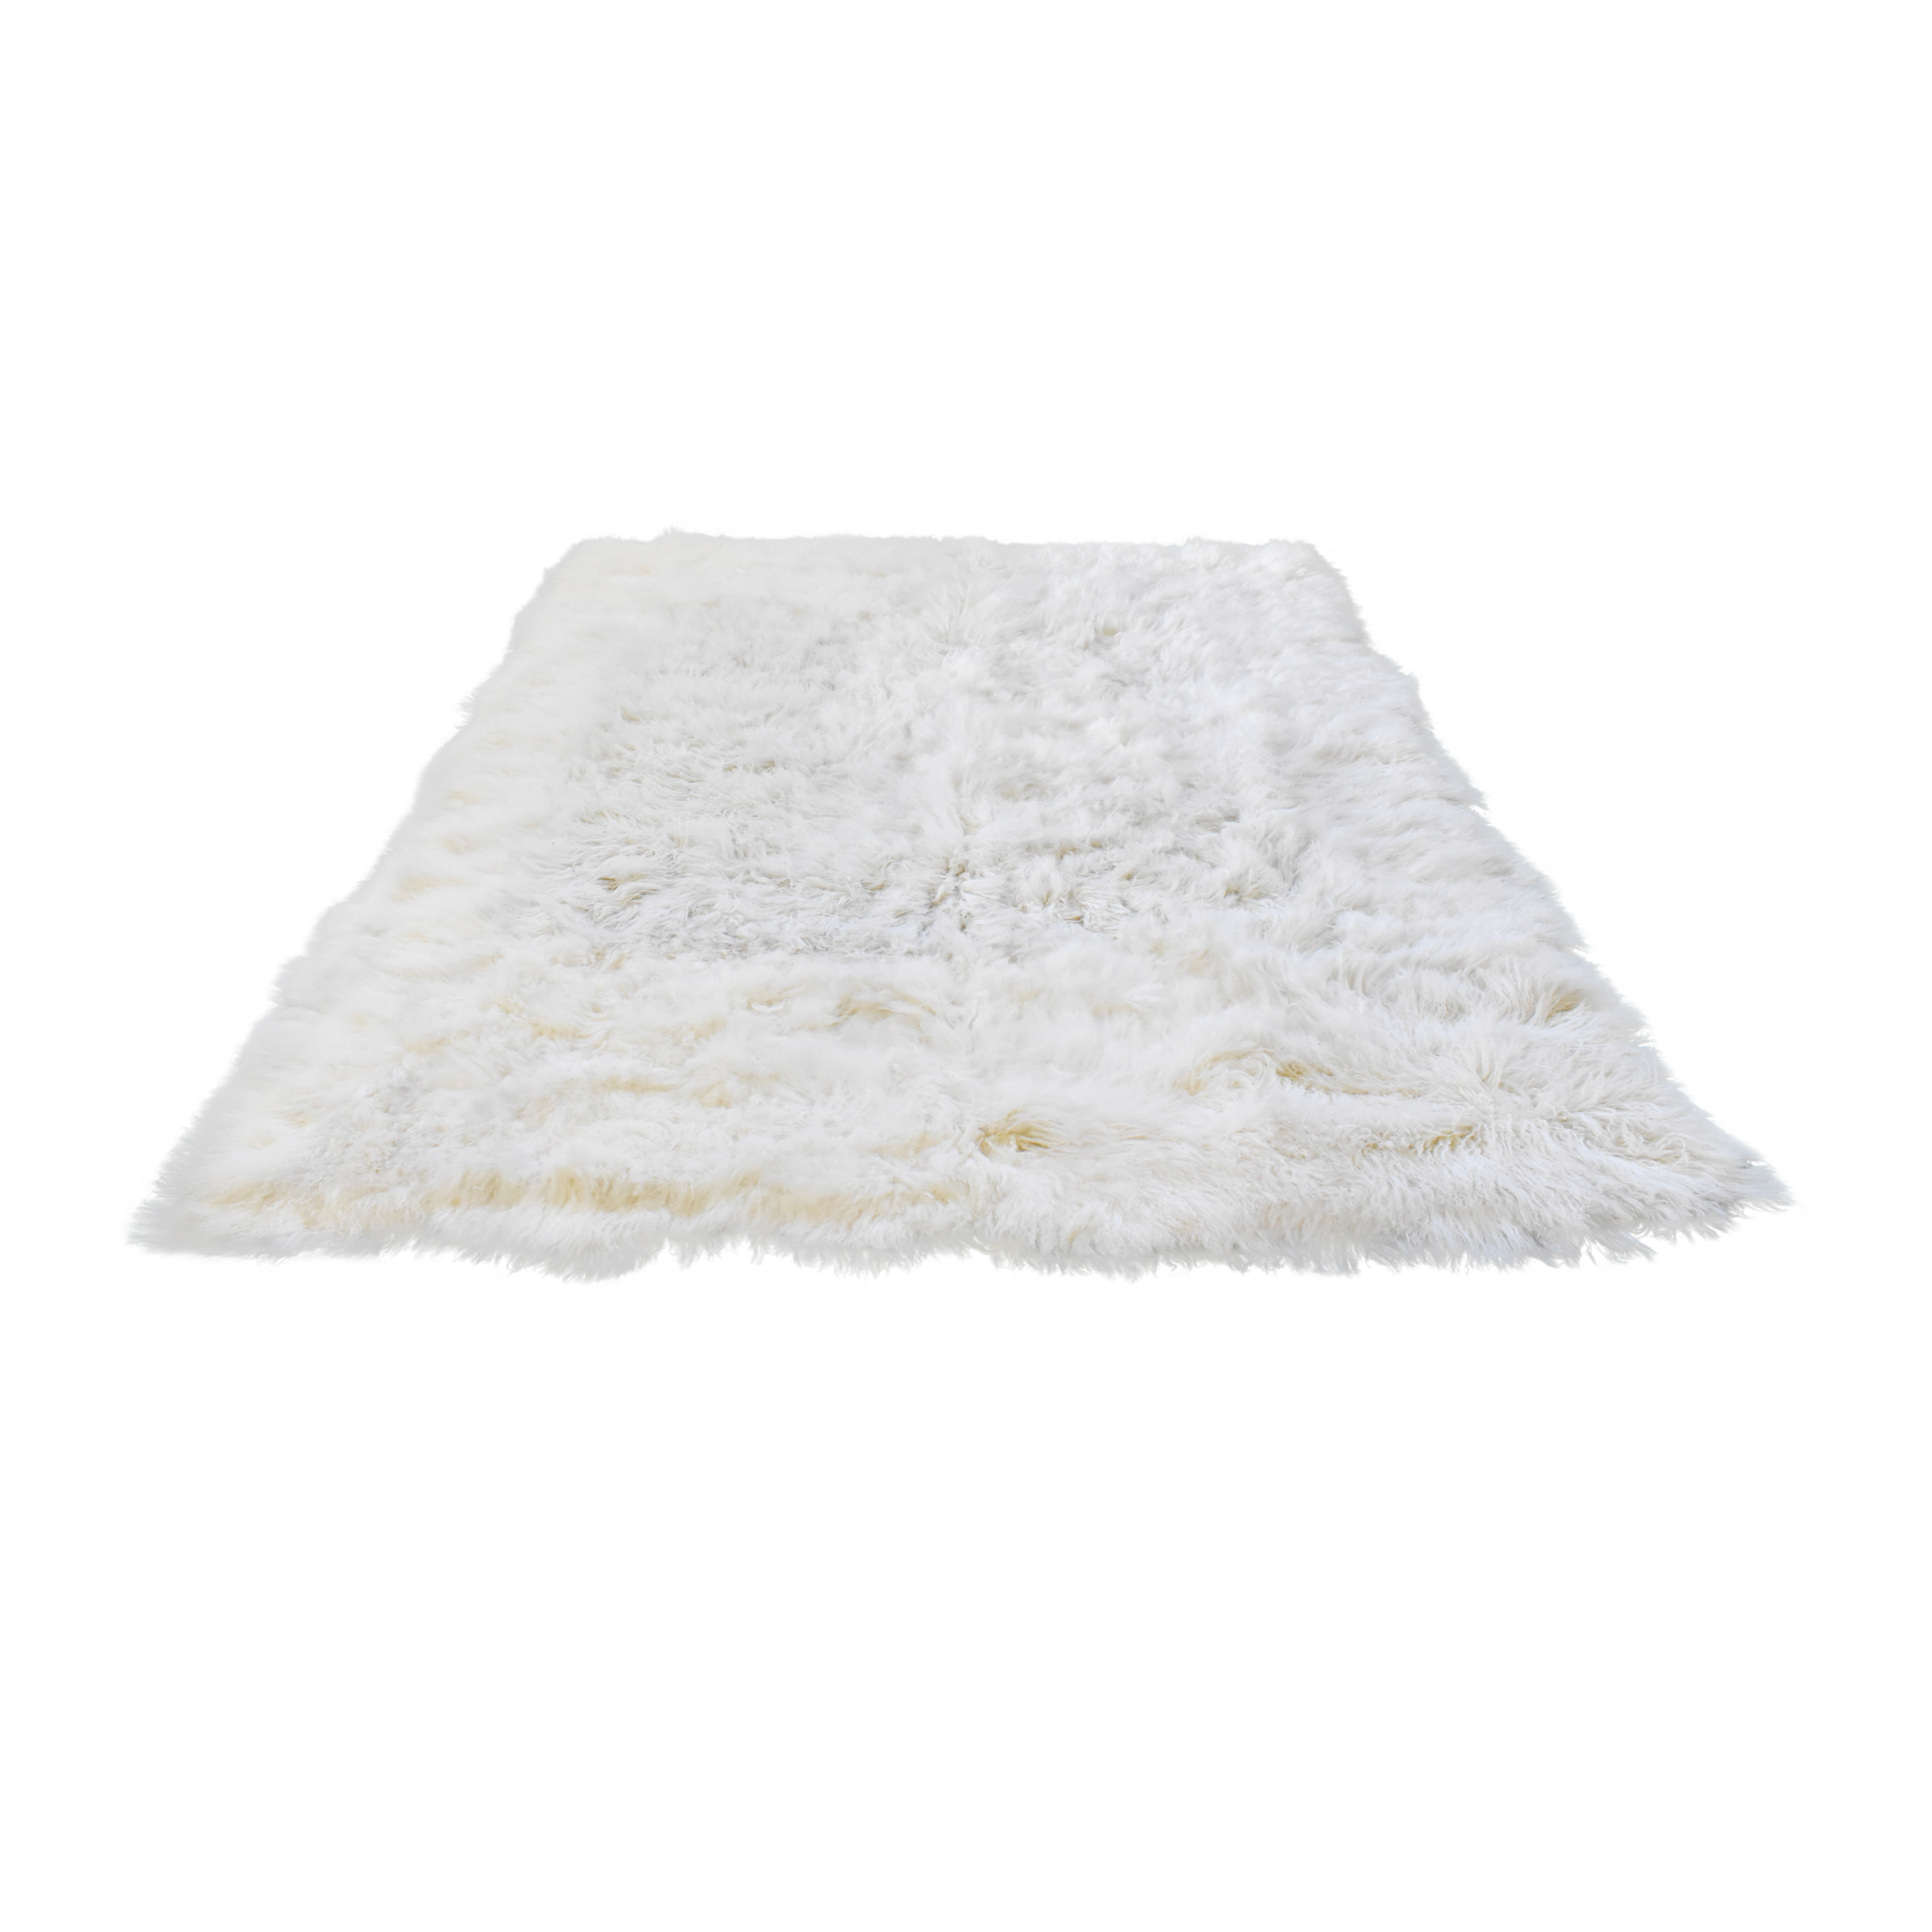 ABC Carpet & Home  ABC Carpet & Home Area Rug white